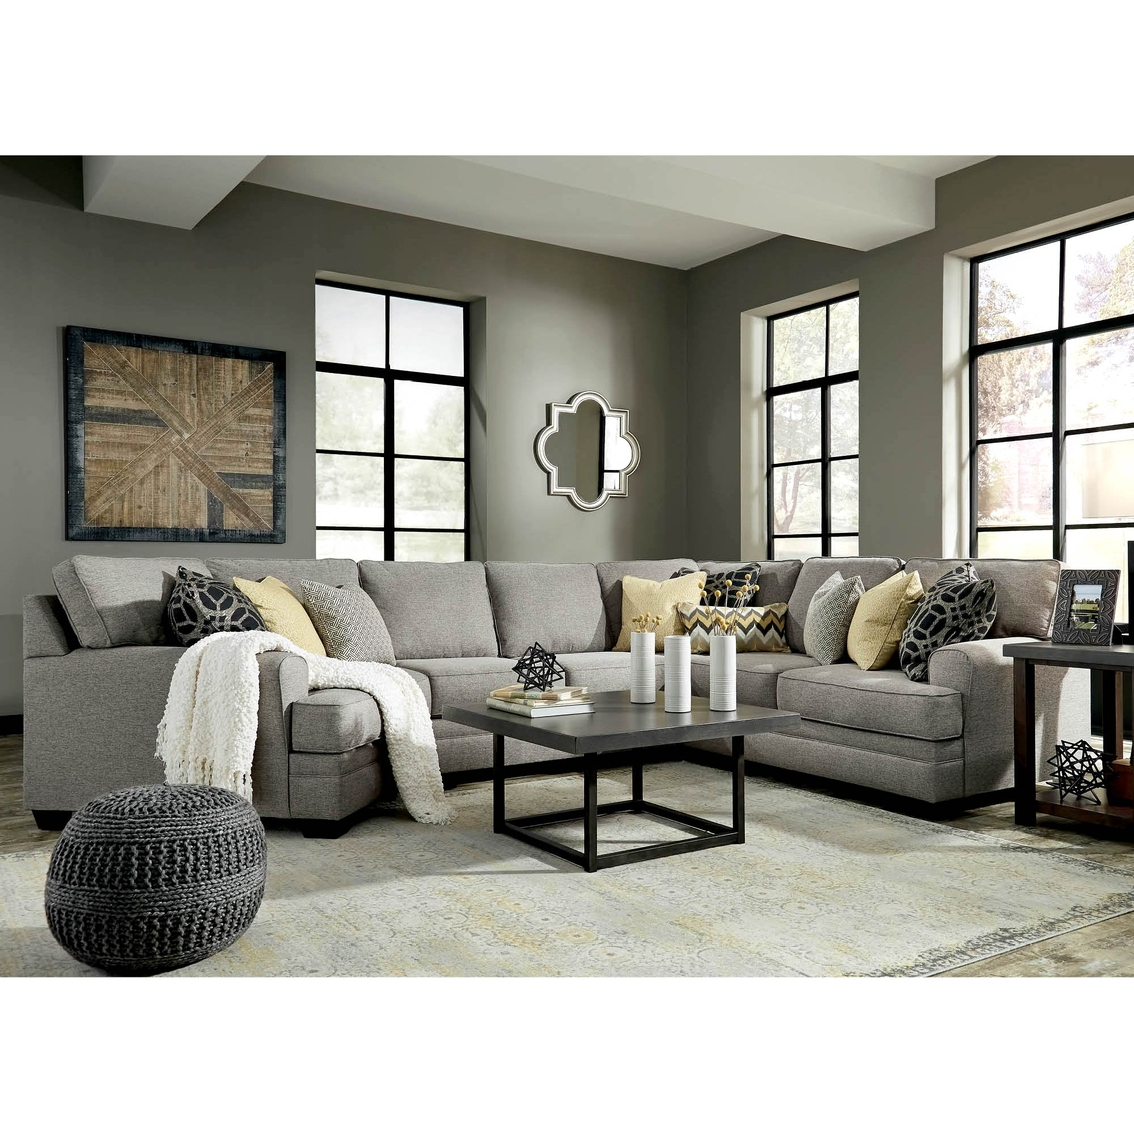 com in sofa photos with eco latest friendly clubanfi sectional lovely cleanupflorida trend chaise cuddler of